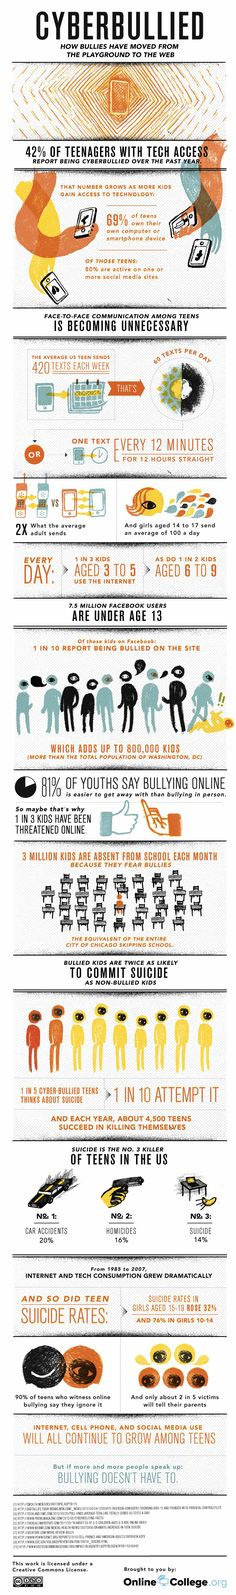 CYBERBULLYING Good facts about cyber-bullying to know as an educator. Some good points to bring up in a talk with students about Cyber-bullying Cyber Bullying, Stop Bullying, Anti Bullying, Bullying Facts, Internet Safety, Sem Internet, Internet Usage, Internet Marketing, Articles En Anglais